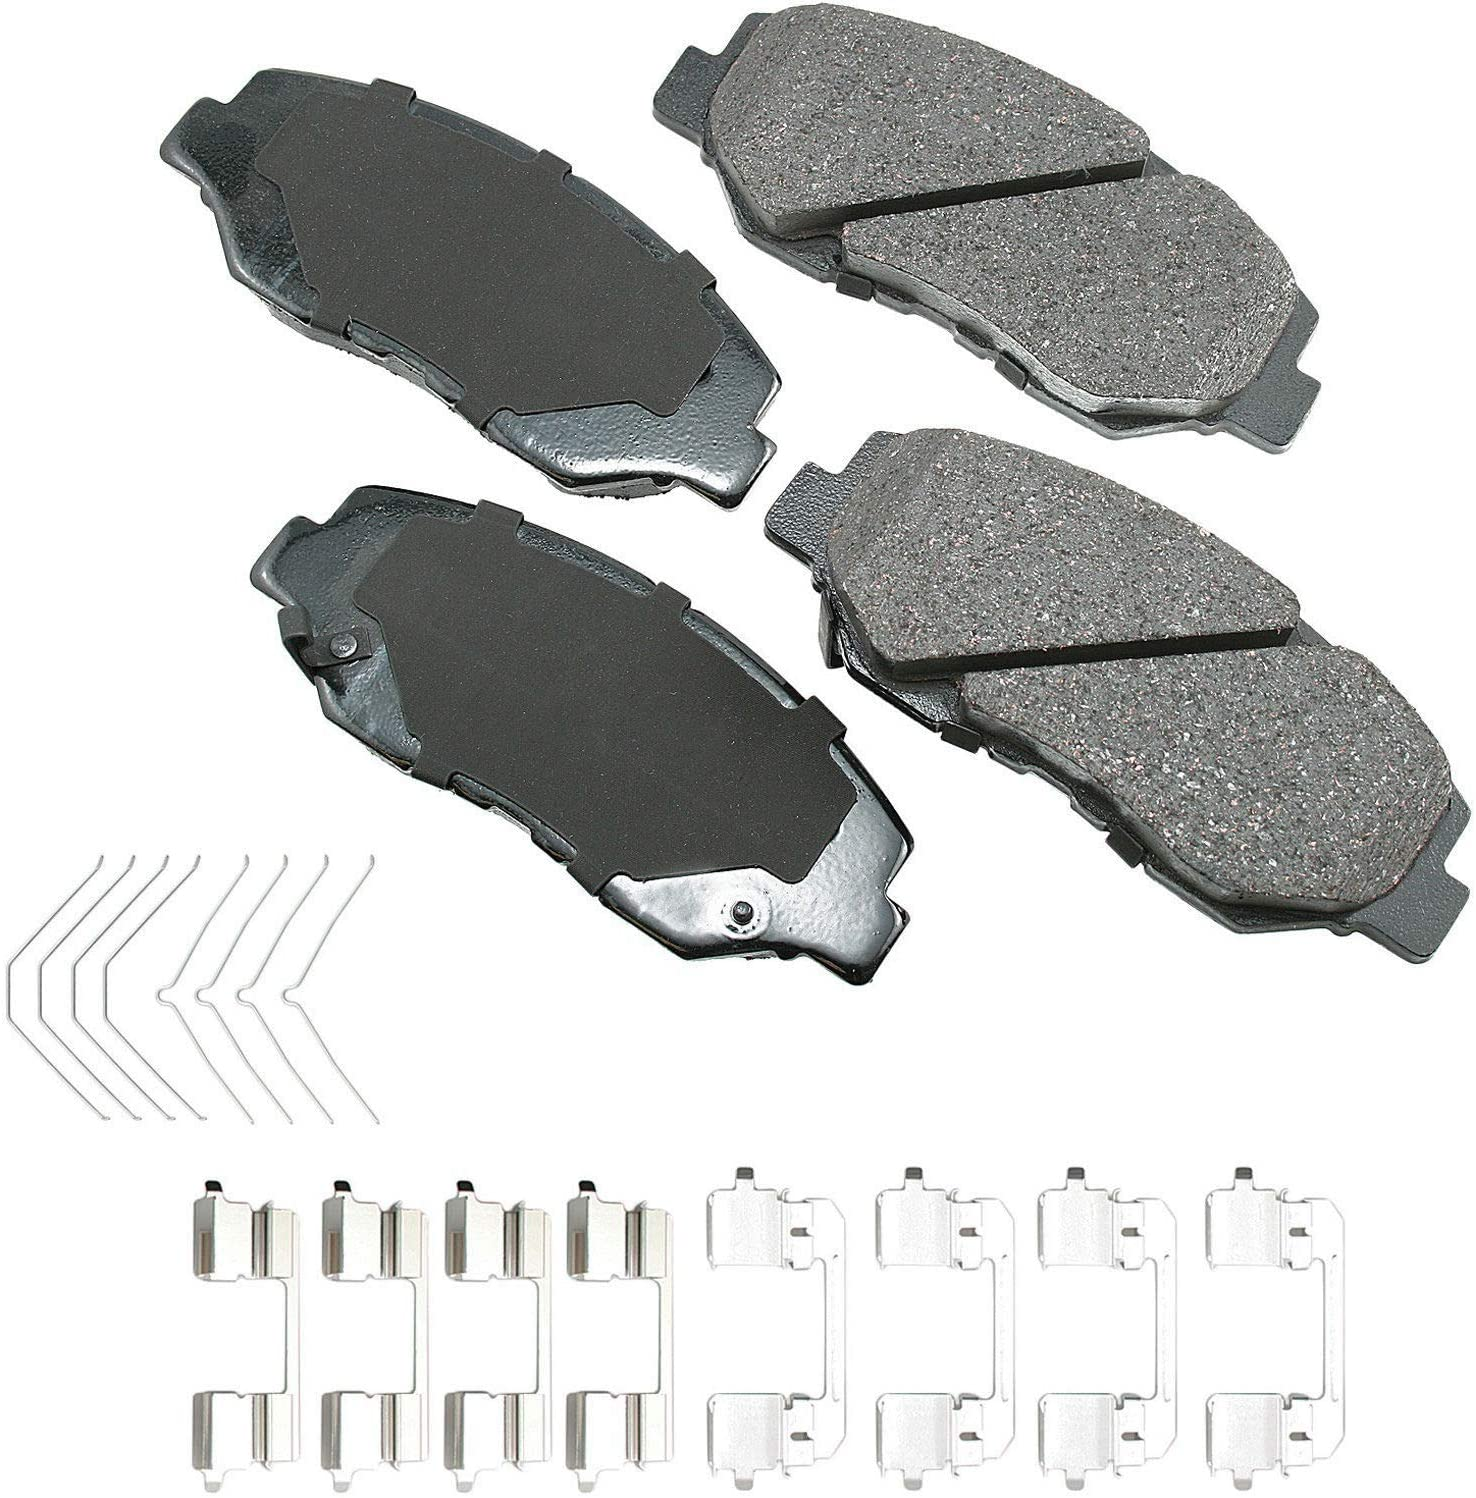 Akebono ACT914A Now free shipping Ultra-Premium Ceramic Front Disc Brake Max 48% OFF Pads GRE